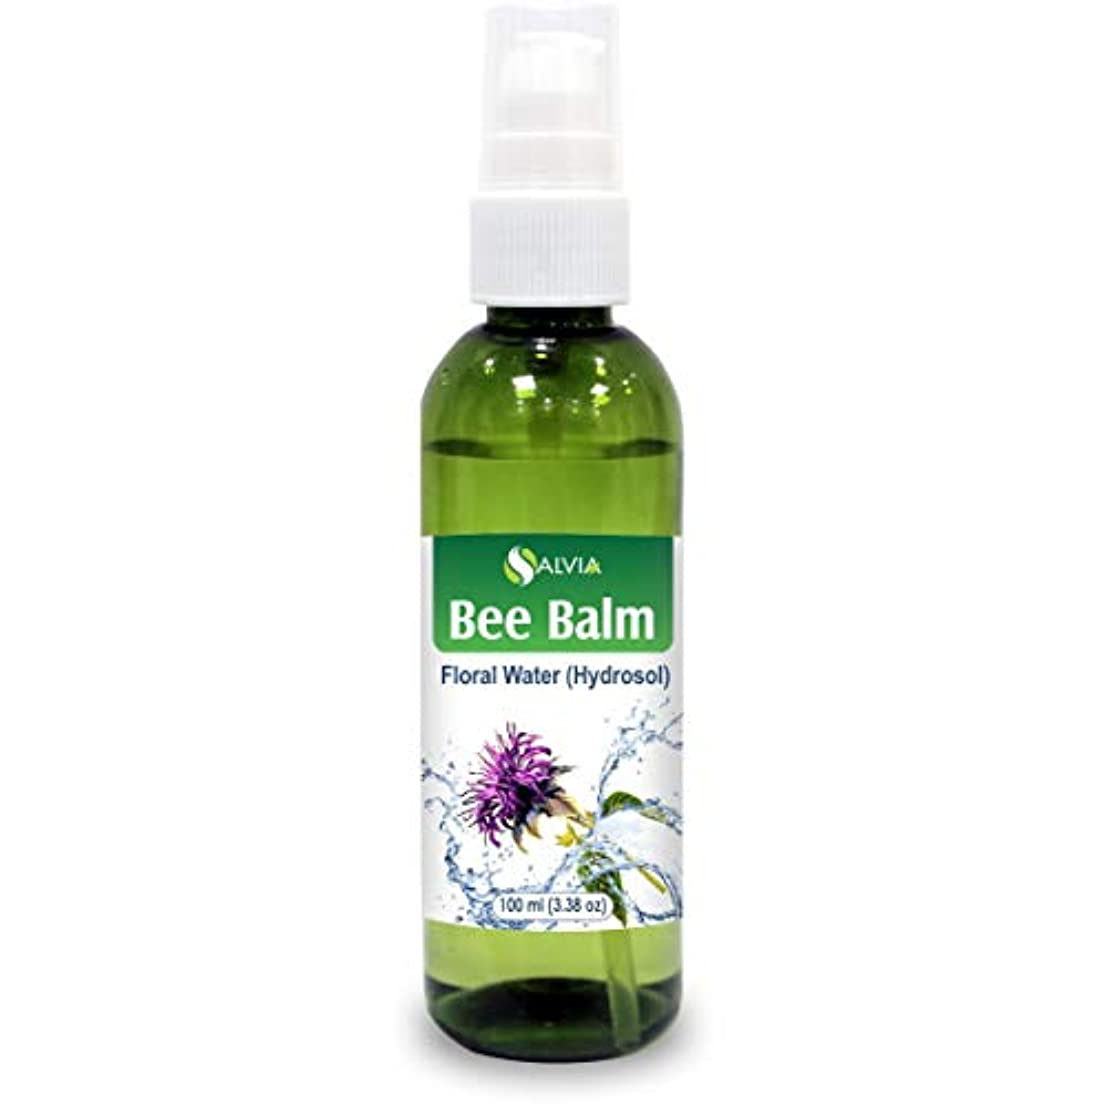 聴衆効果船員Bee Balm Floral Water 100ml (Hydrosol) 100% Pure And Natural